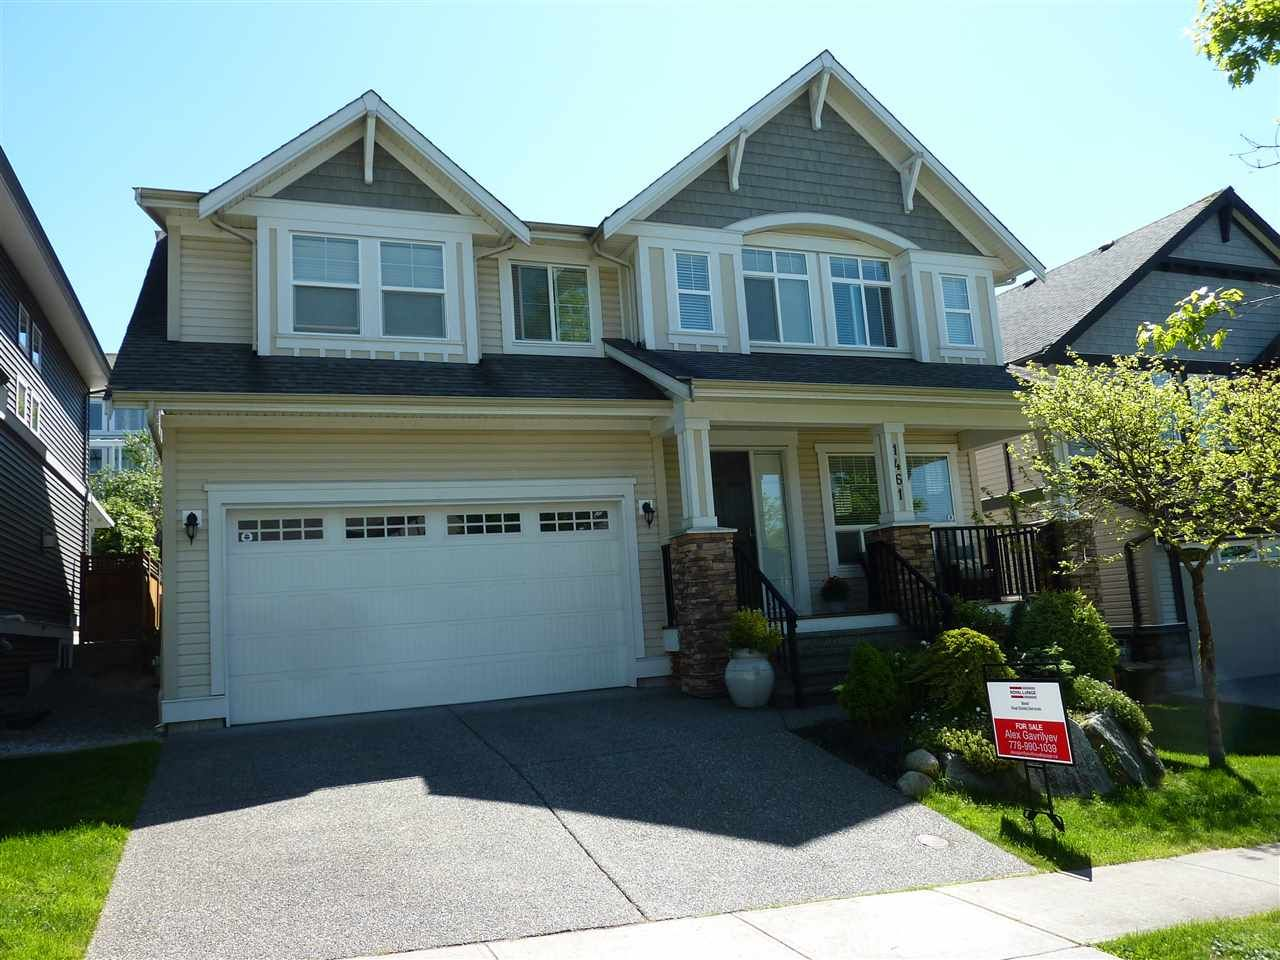 Main Photo: 1461 AVONDALE STREET in Coquitlam: Burke Mountain House for sale : MLS®# R2161727